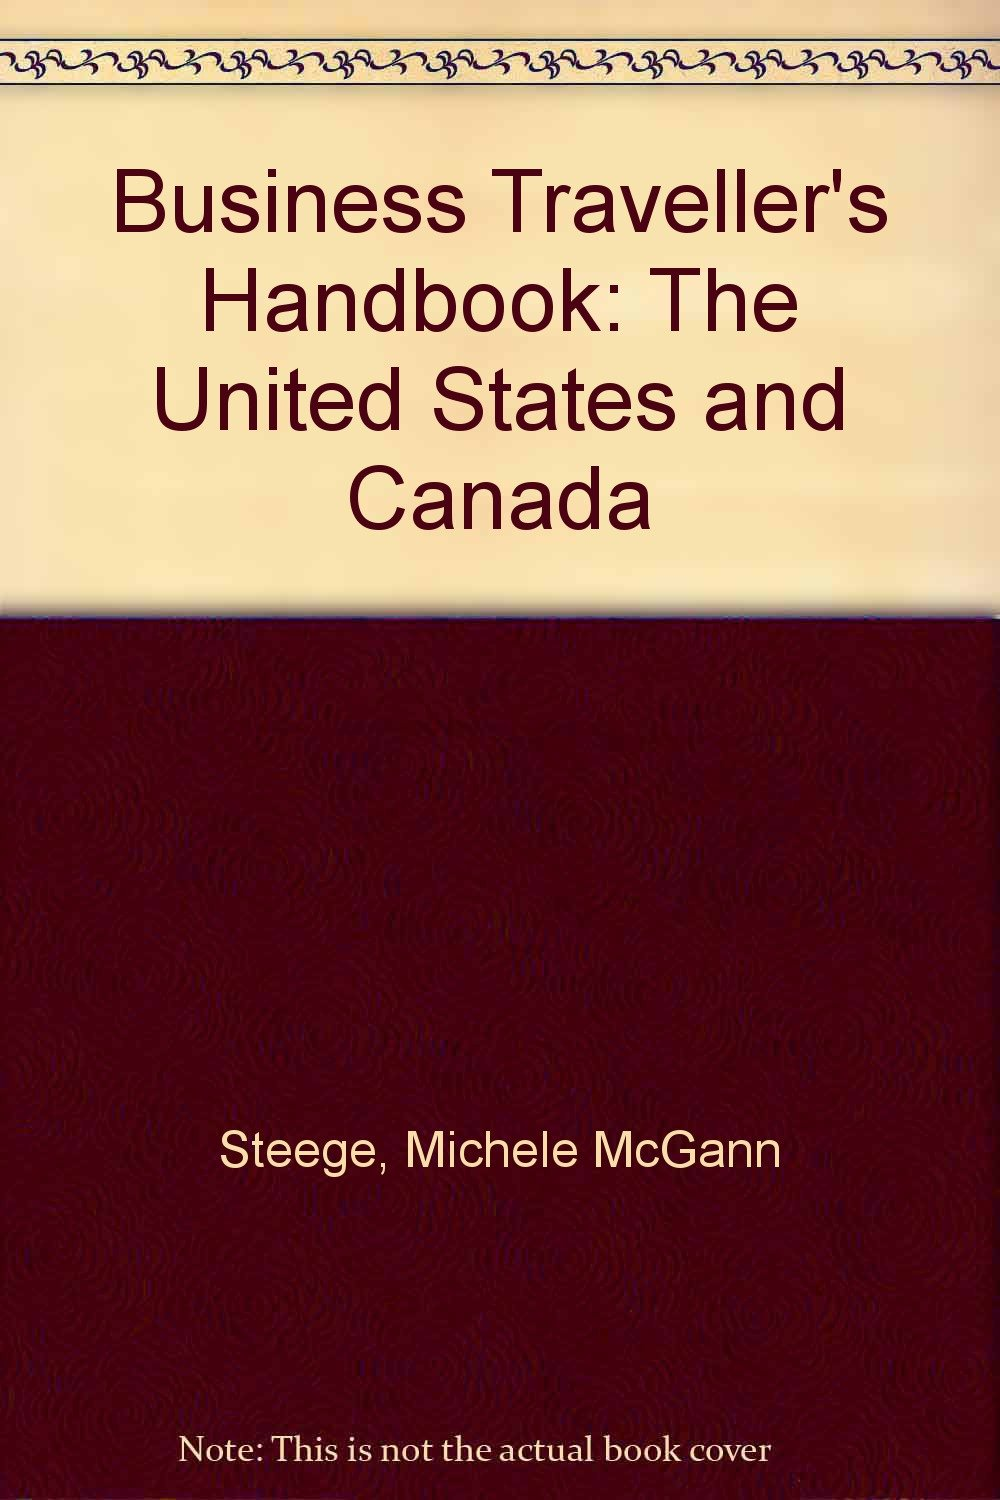 The Business Traveller's Handbook: The U.S. and Canada